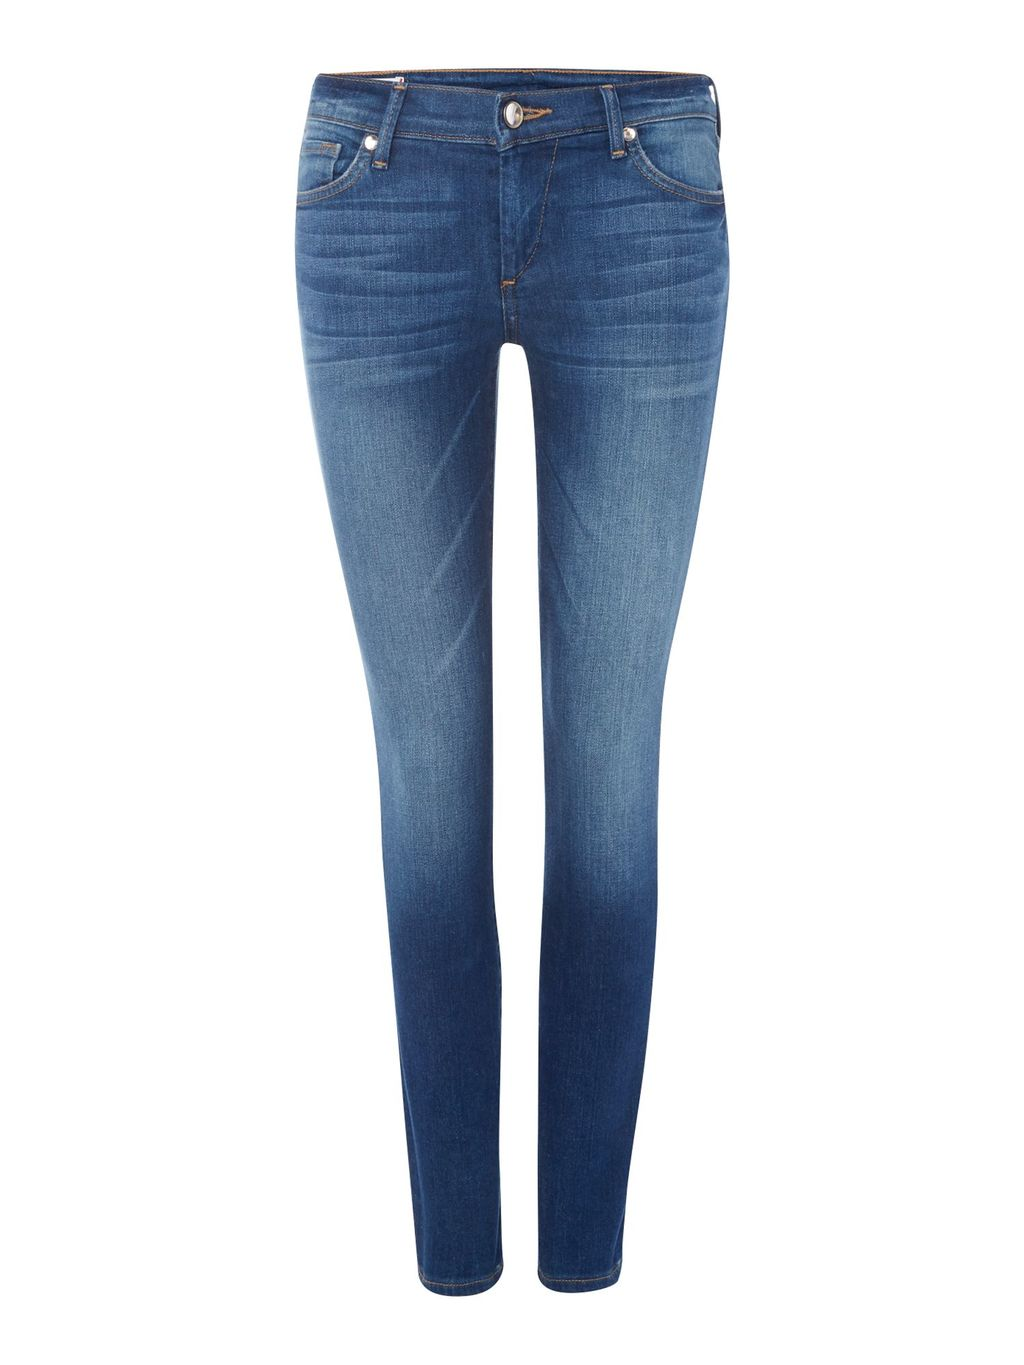 Casey Low Rise Skinny Jean In Crystal Springs, Denim Dark Wash - style: skinny leg; length: standard; pattern: plain; pocket detail: traditional 5 pocket; waist: mid/regular rise; predominant colour: denim; occasions: casual; fibres: cotton - stretch; jeans detail: shading down centre of thigh; texture group: denim; pattern type: fabric; season: s/s 2016; wardrobe: basic